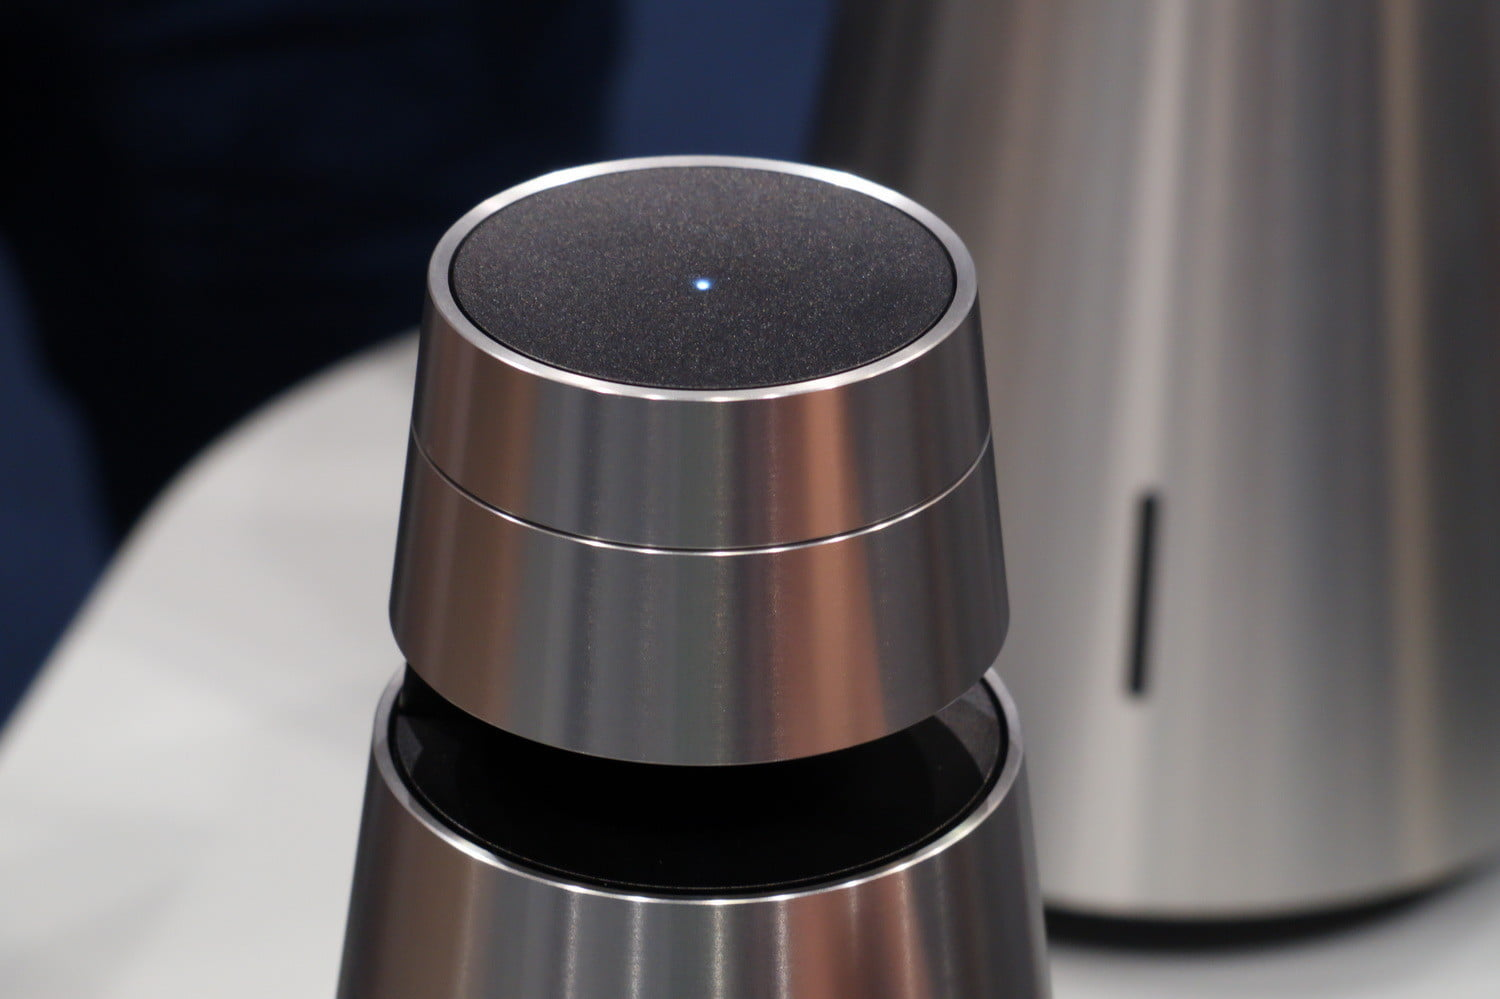 Bang & Olufsen's pricey new wireless speakers look like martini shakers